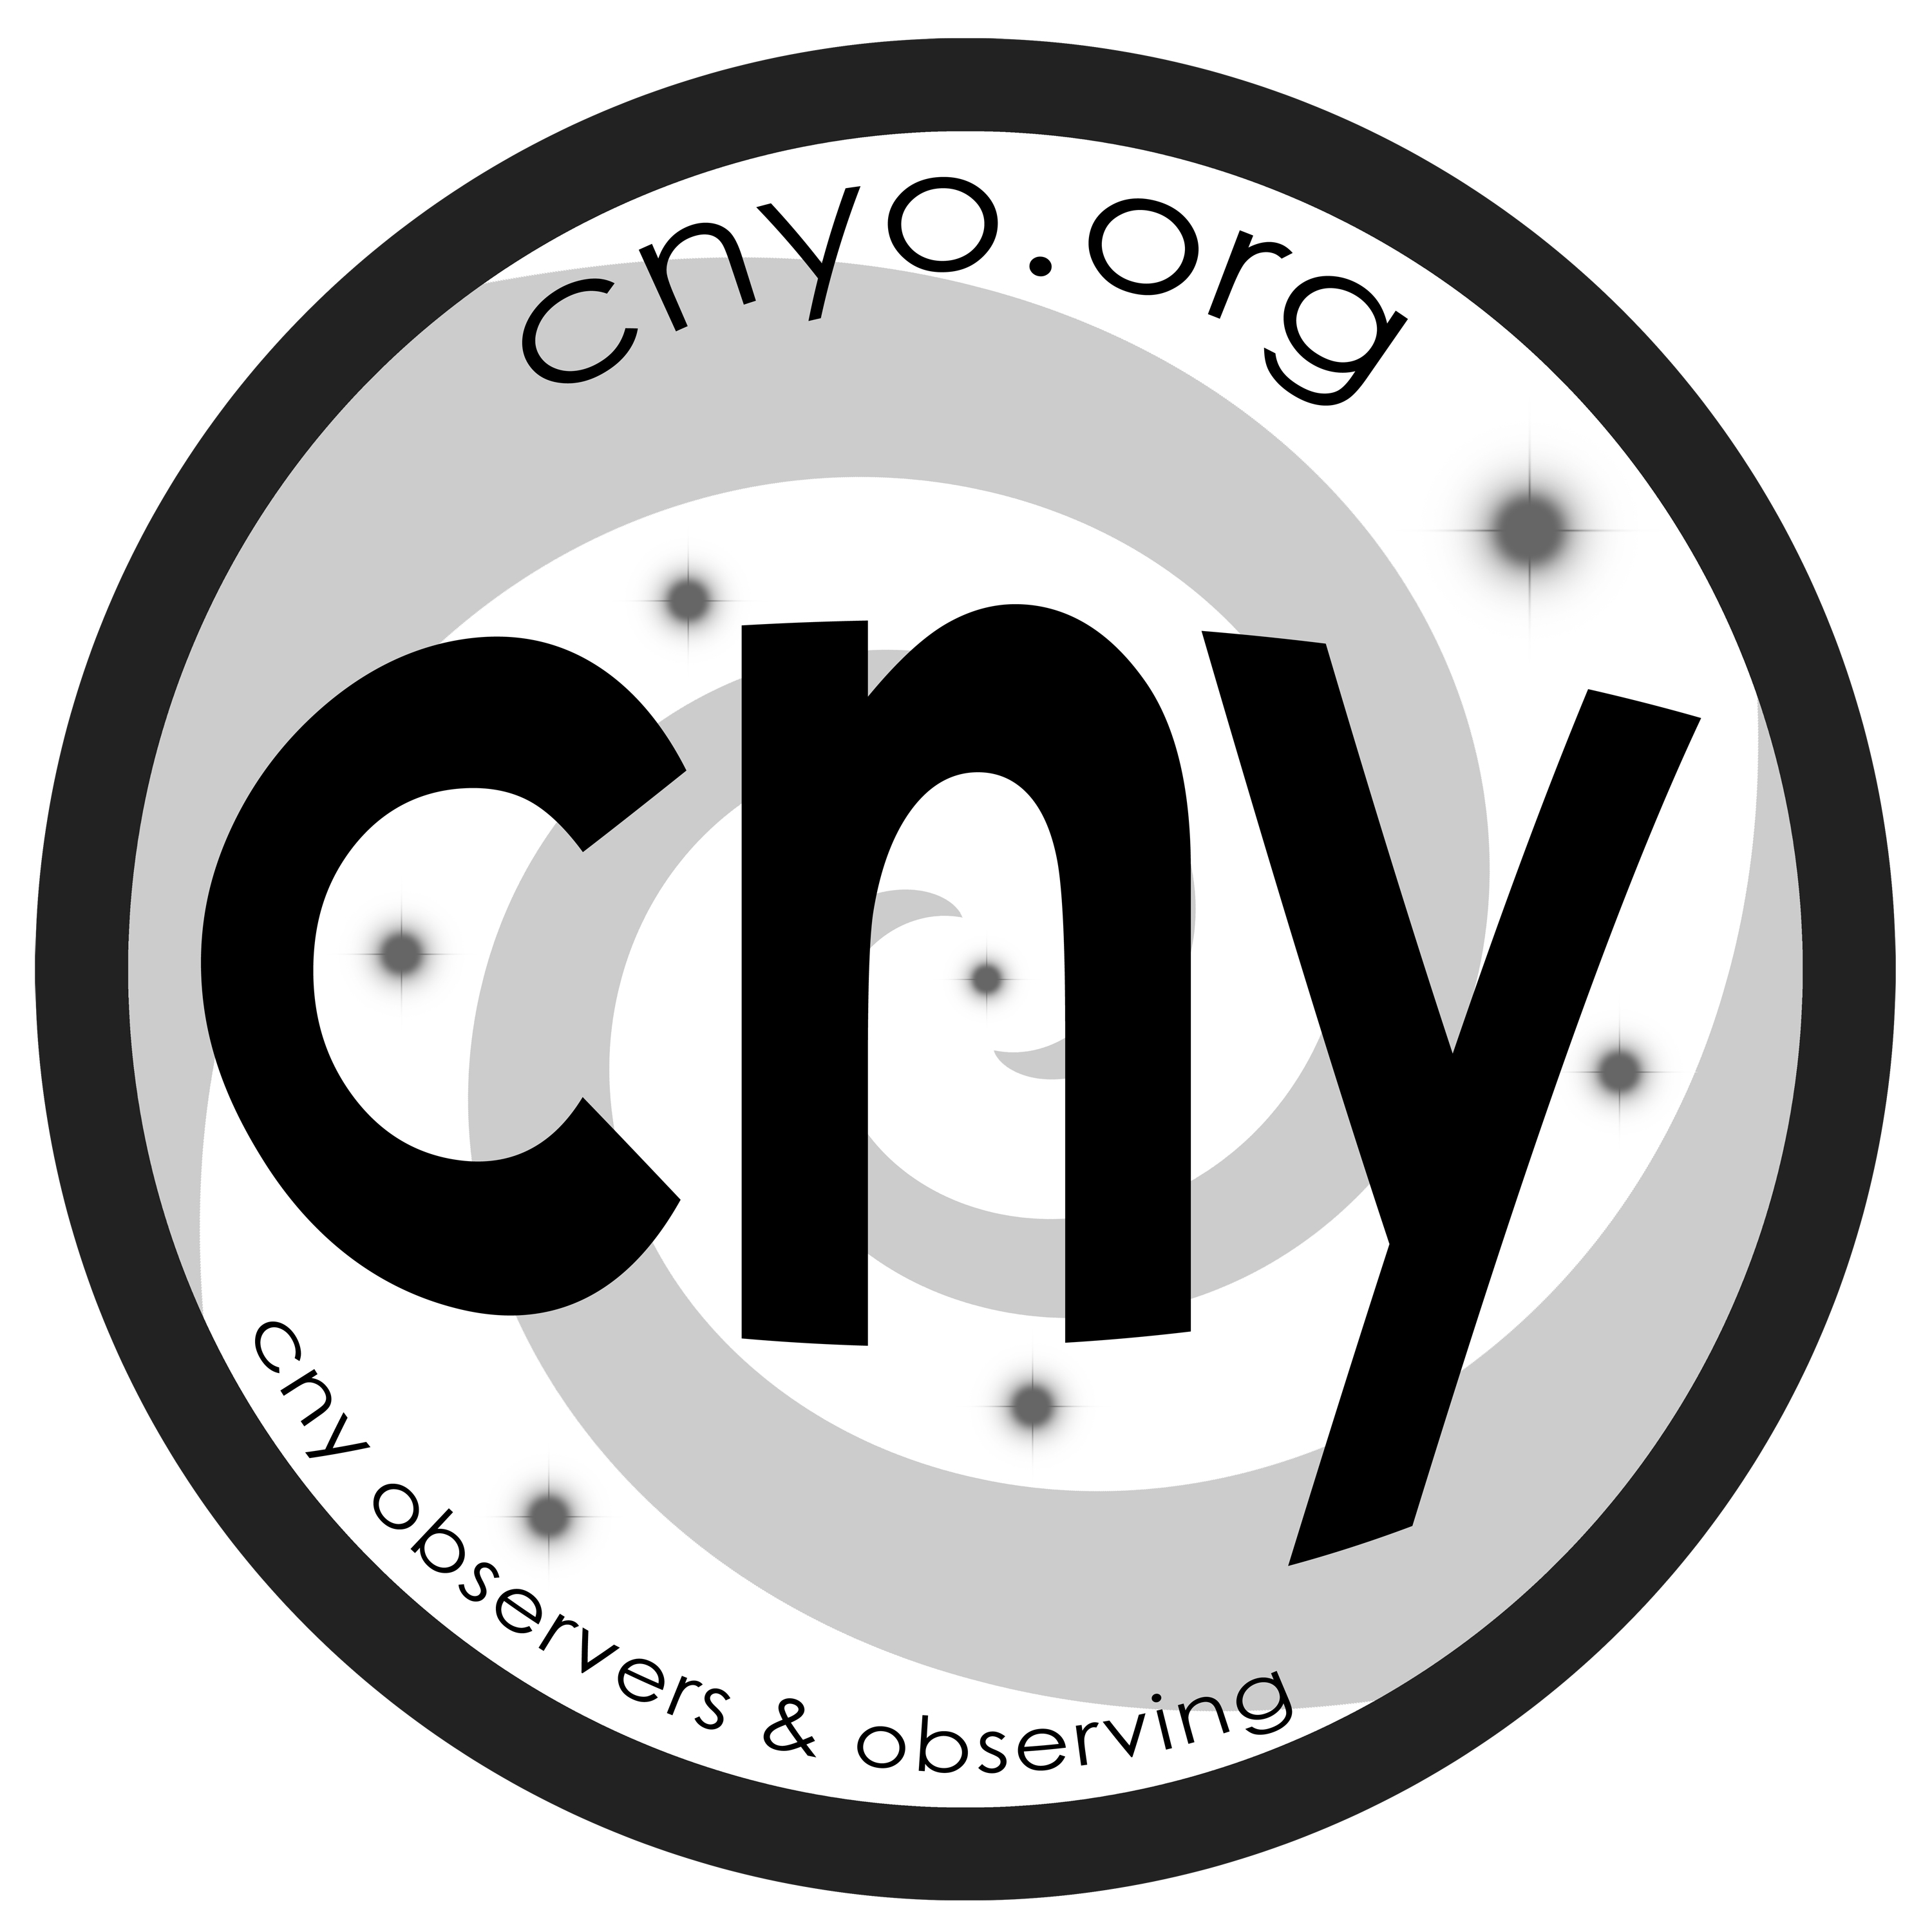 Central New York Observers Logo